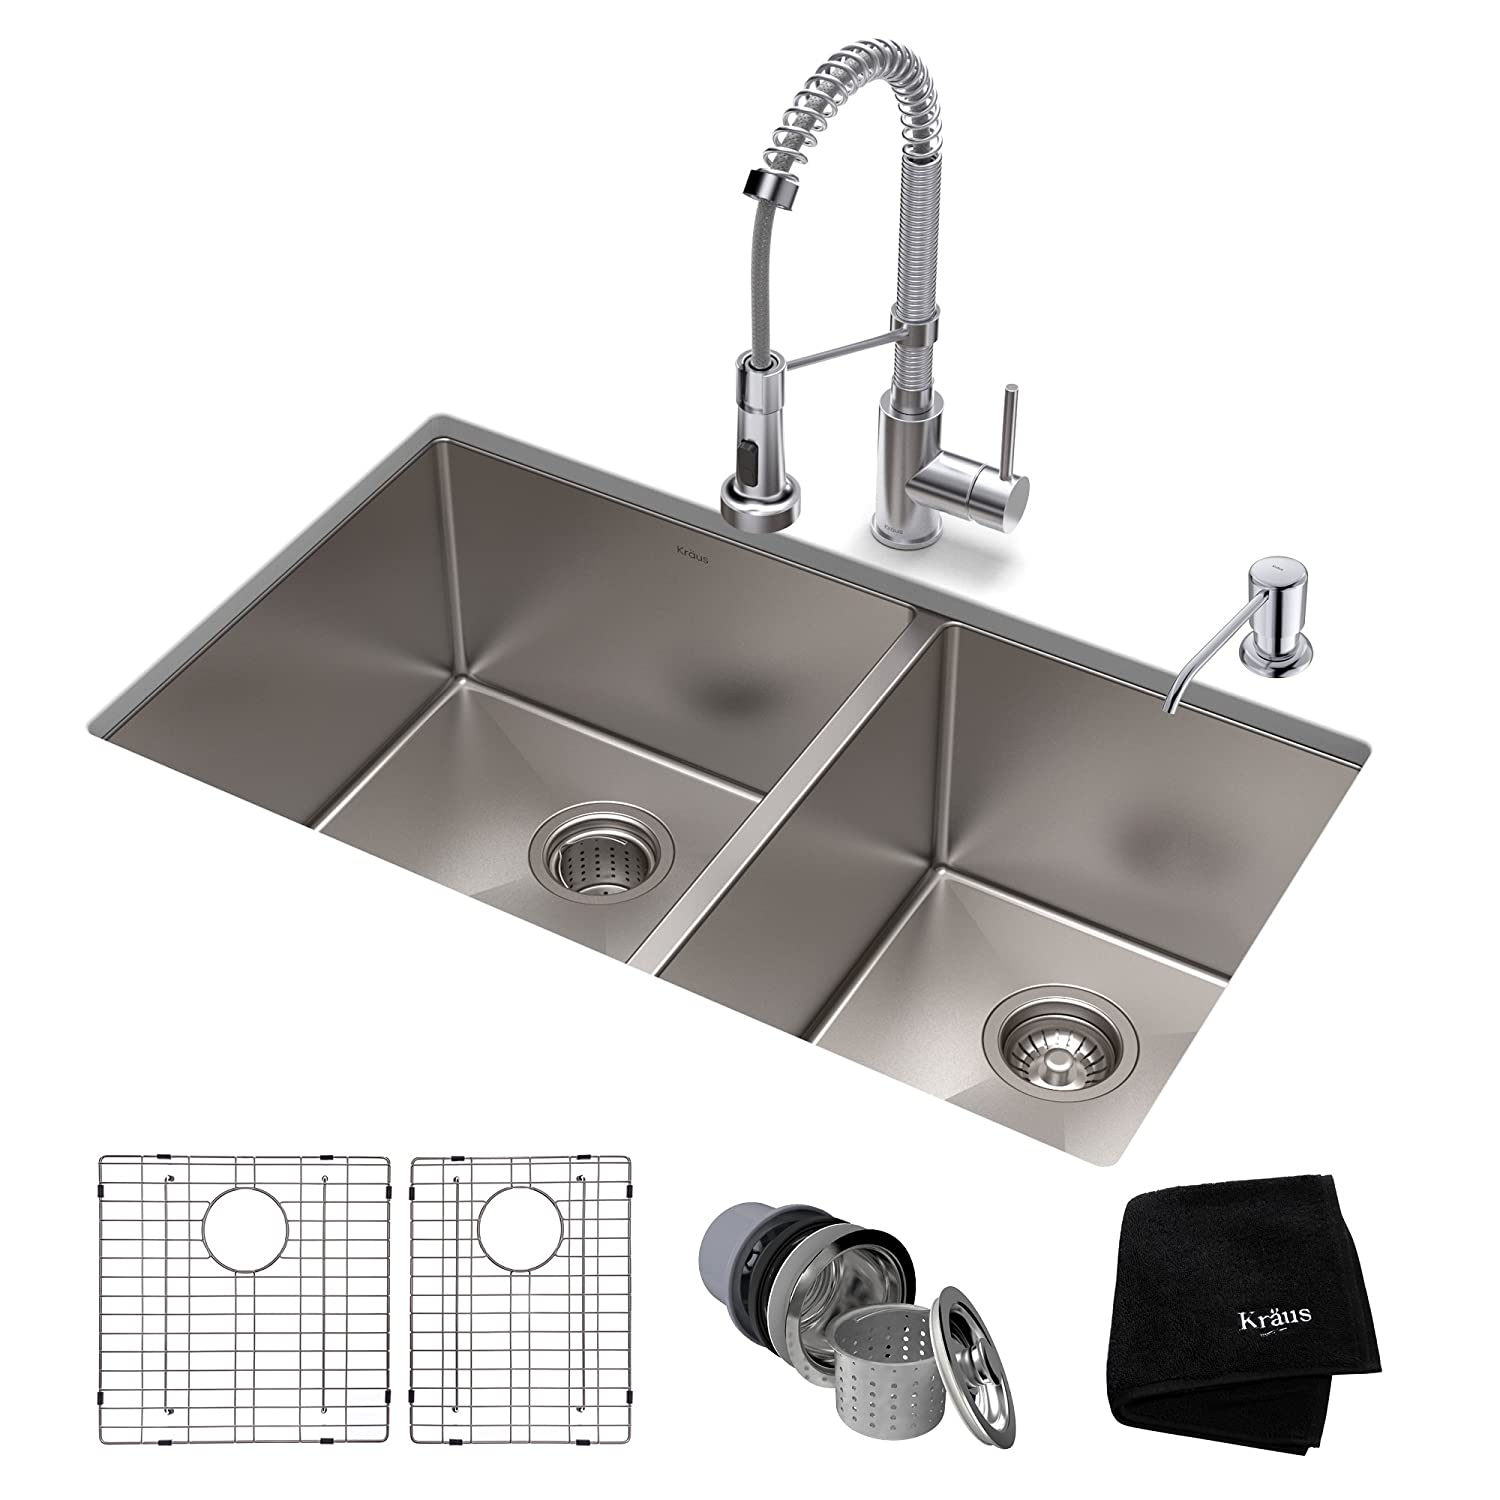 c75fa3f33d KRAUS KHU103-33-1610-53CH Set with Standart PRO Stainless Steel Sink and  Bolden Commercial Pull Faucet in Chrome Kitchen Sink & Faucet Combo - -  Amazon.com